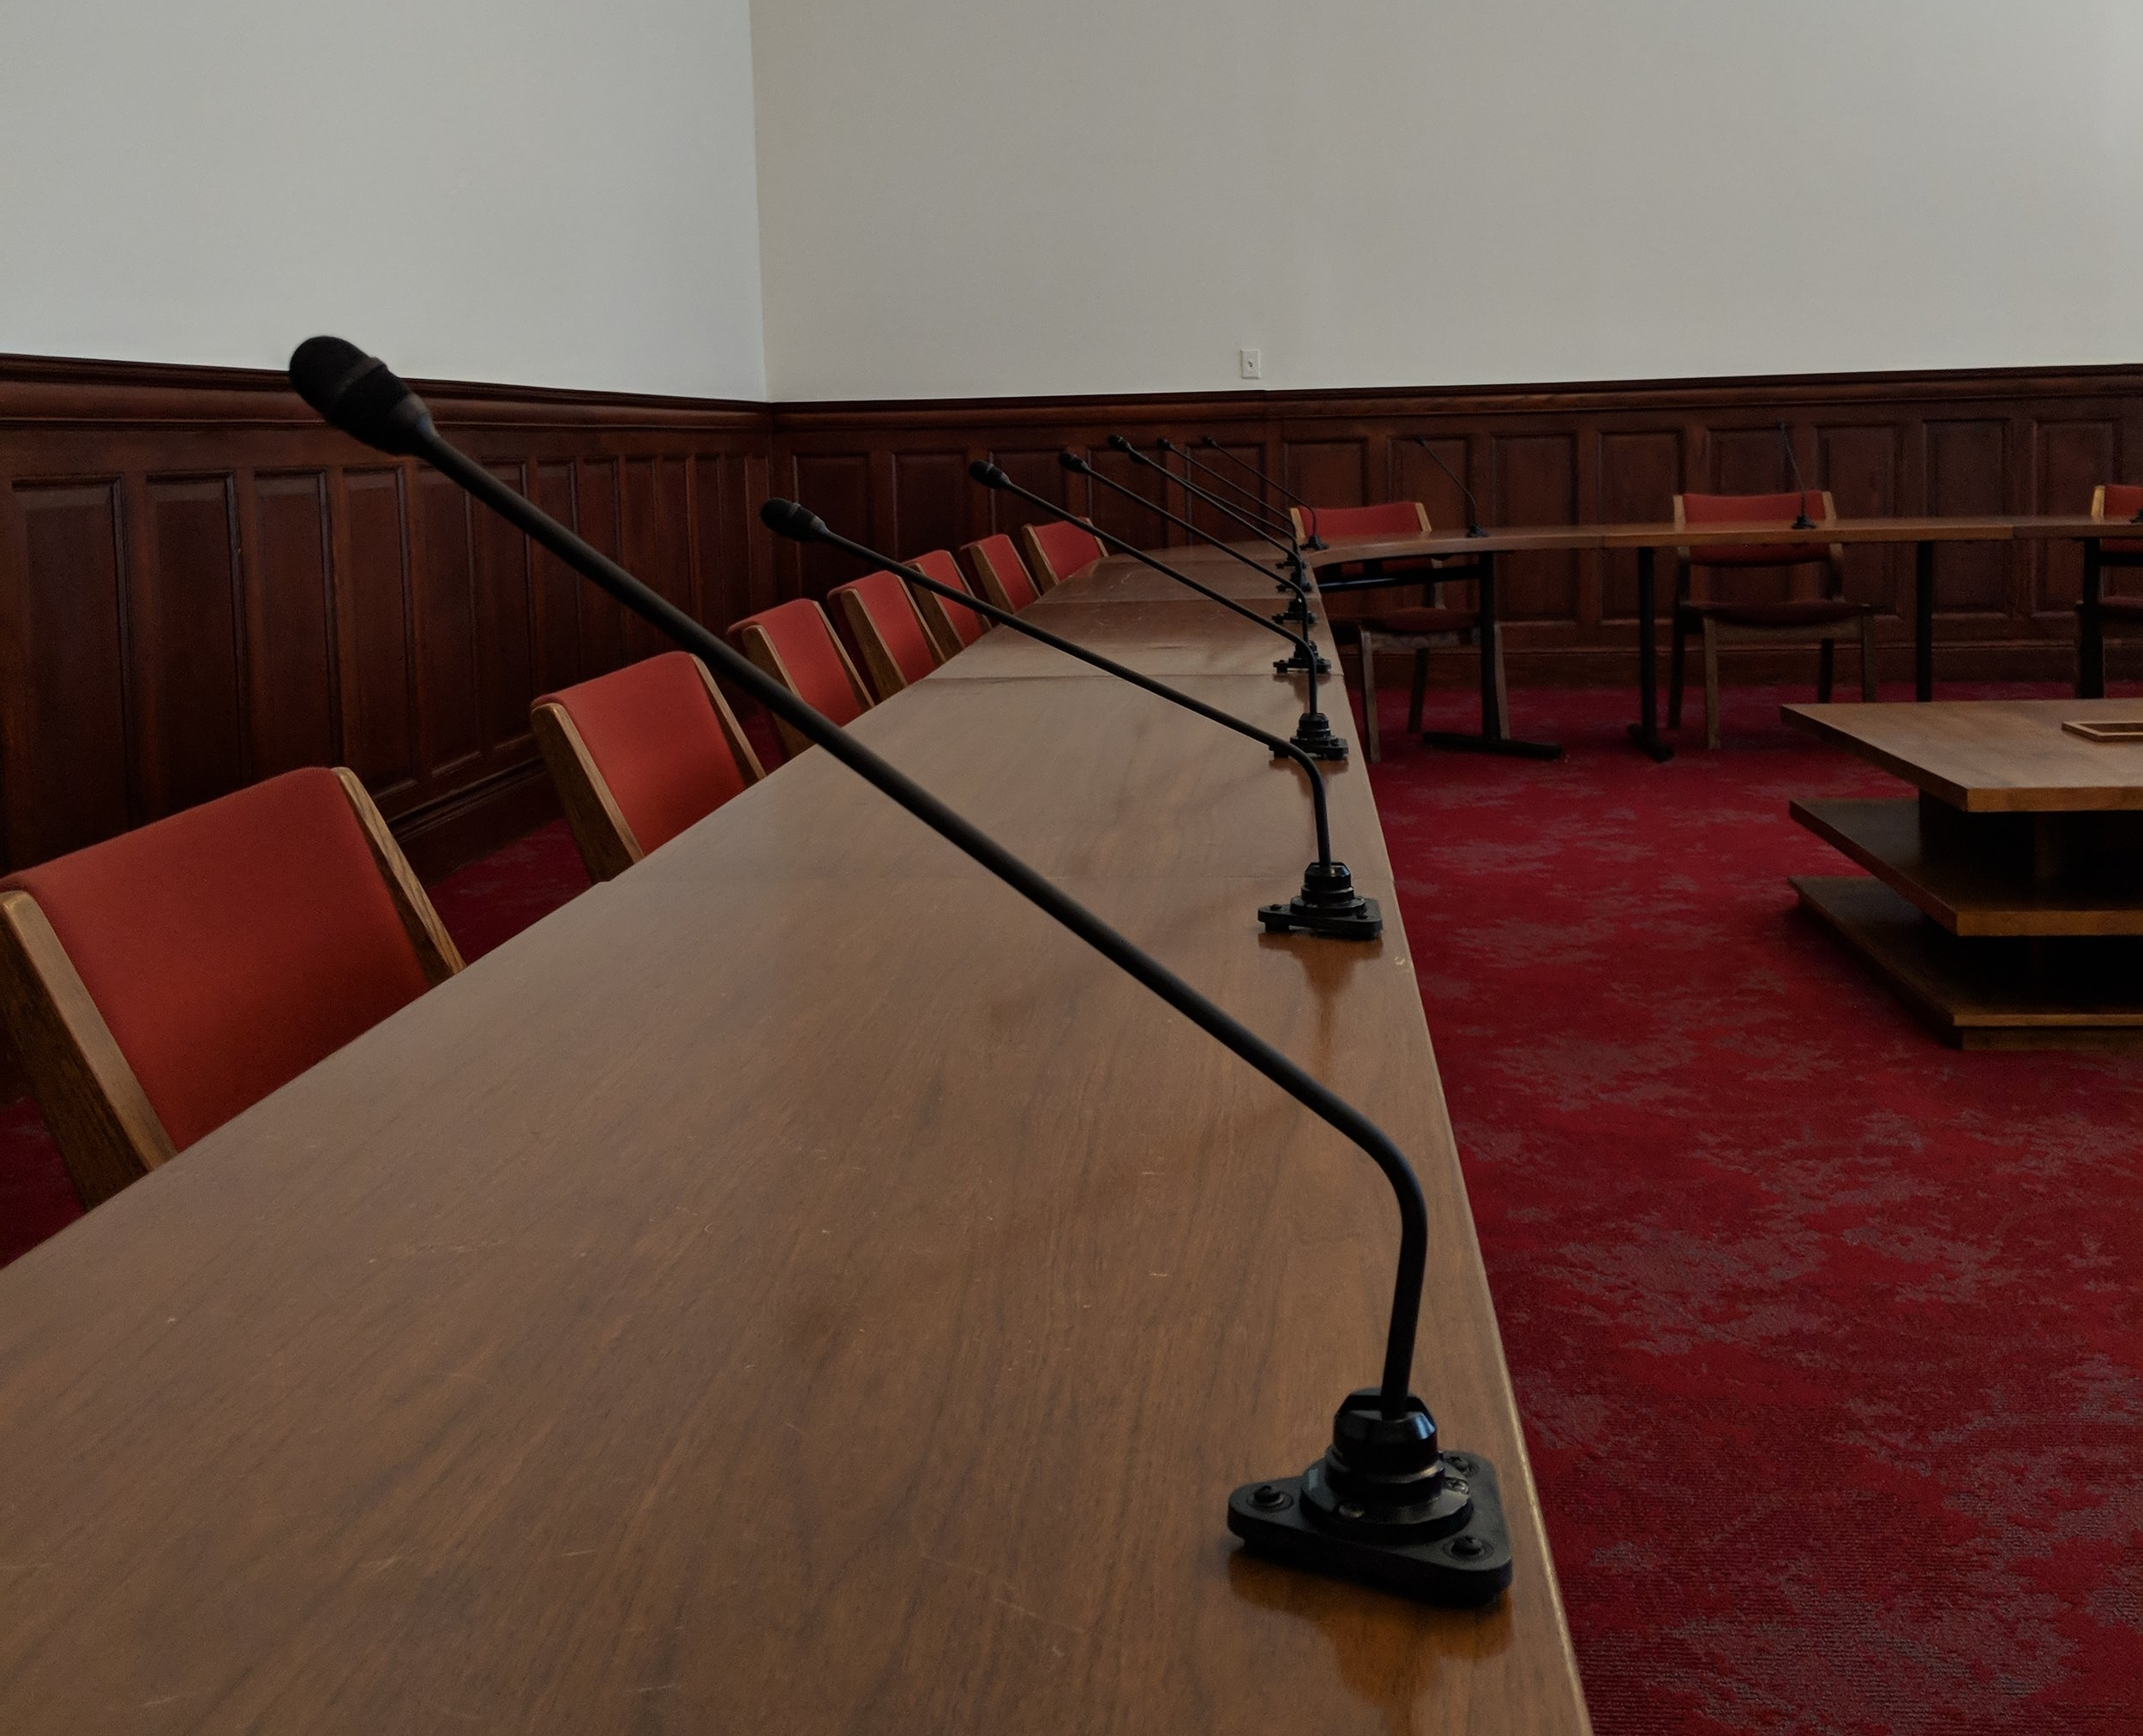 There are a total of 23 microphones on the conference table.